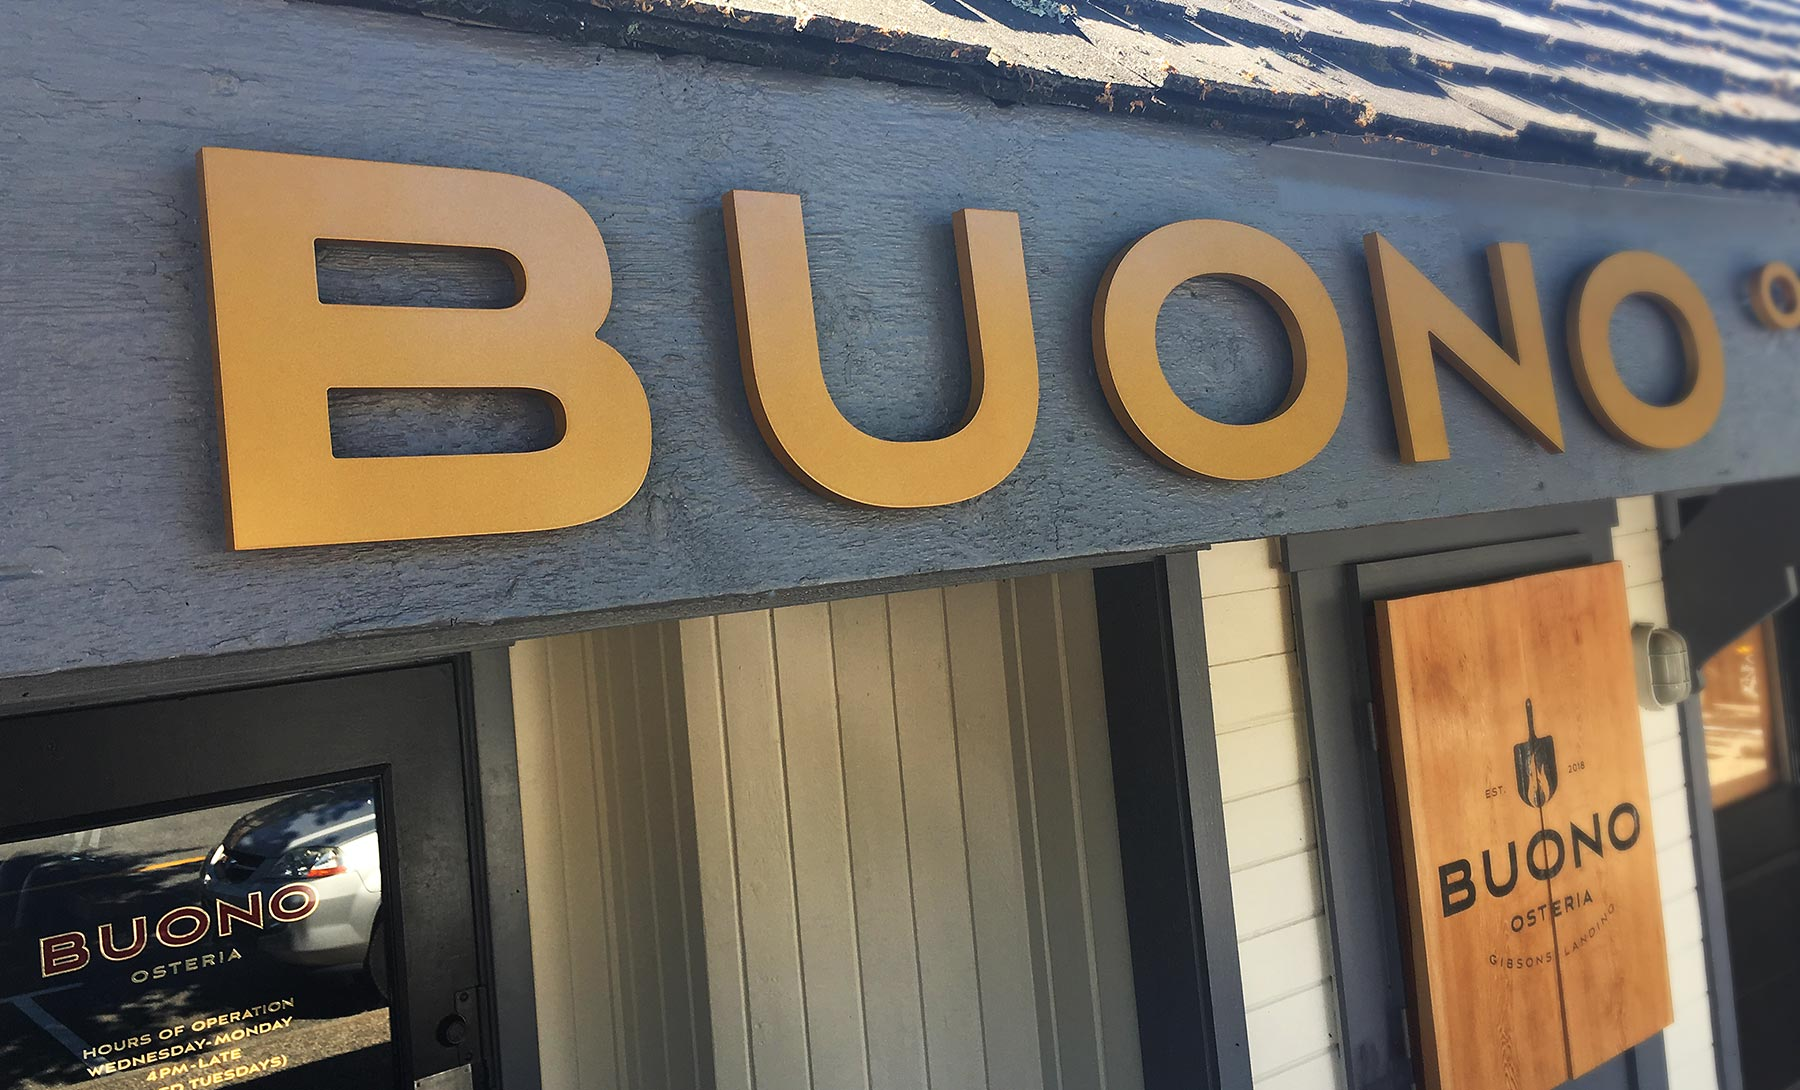 Dimensional lettering for Buono Osteria in Gibsons, BC.